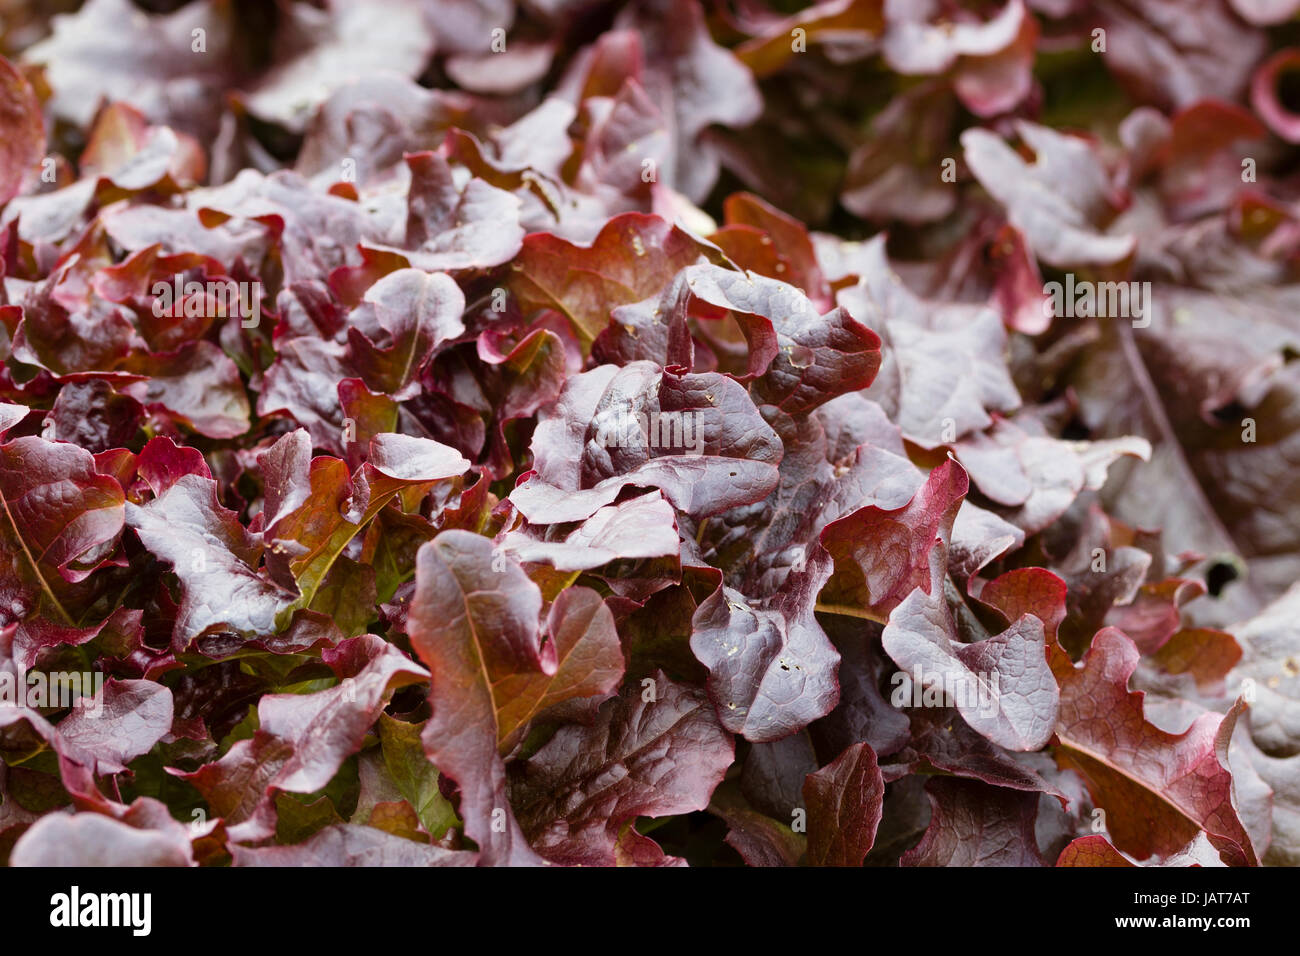 Bronzed red leaves of the popular loosehead type lettuce, 'Red Salad Bowl' - Stock Image